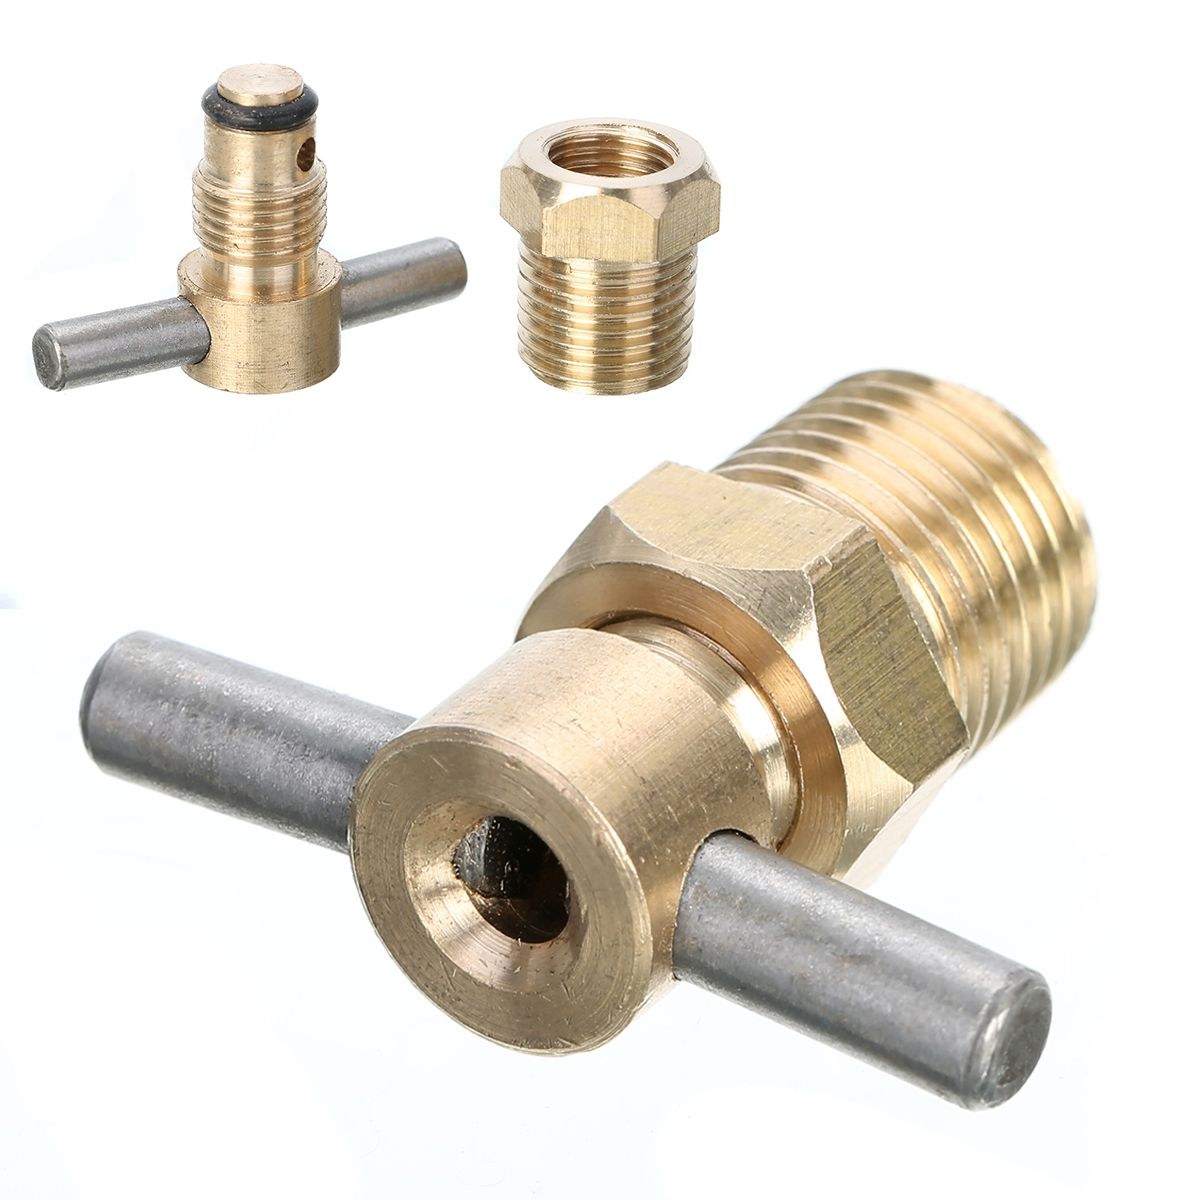 1pc 1/4 Inch NPT Brass Drain Valve For Air Compressor Tank